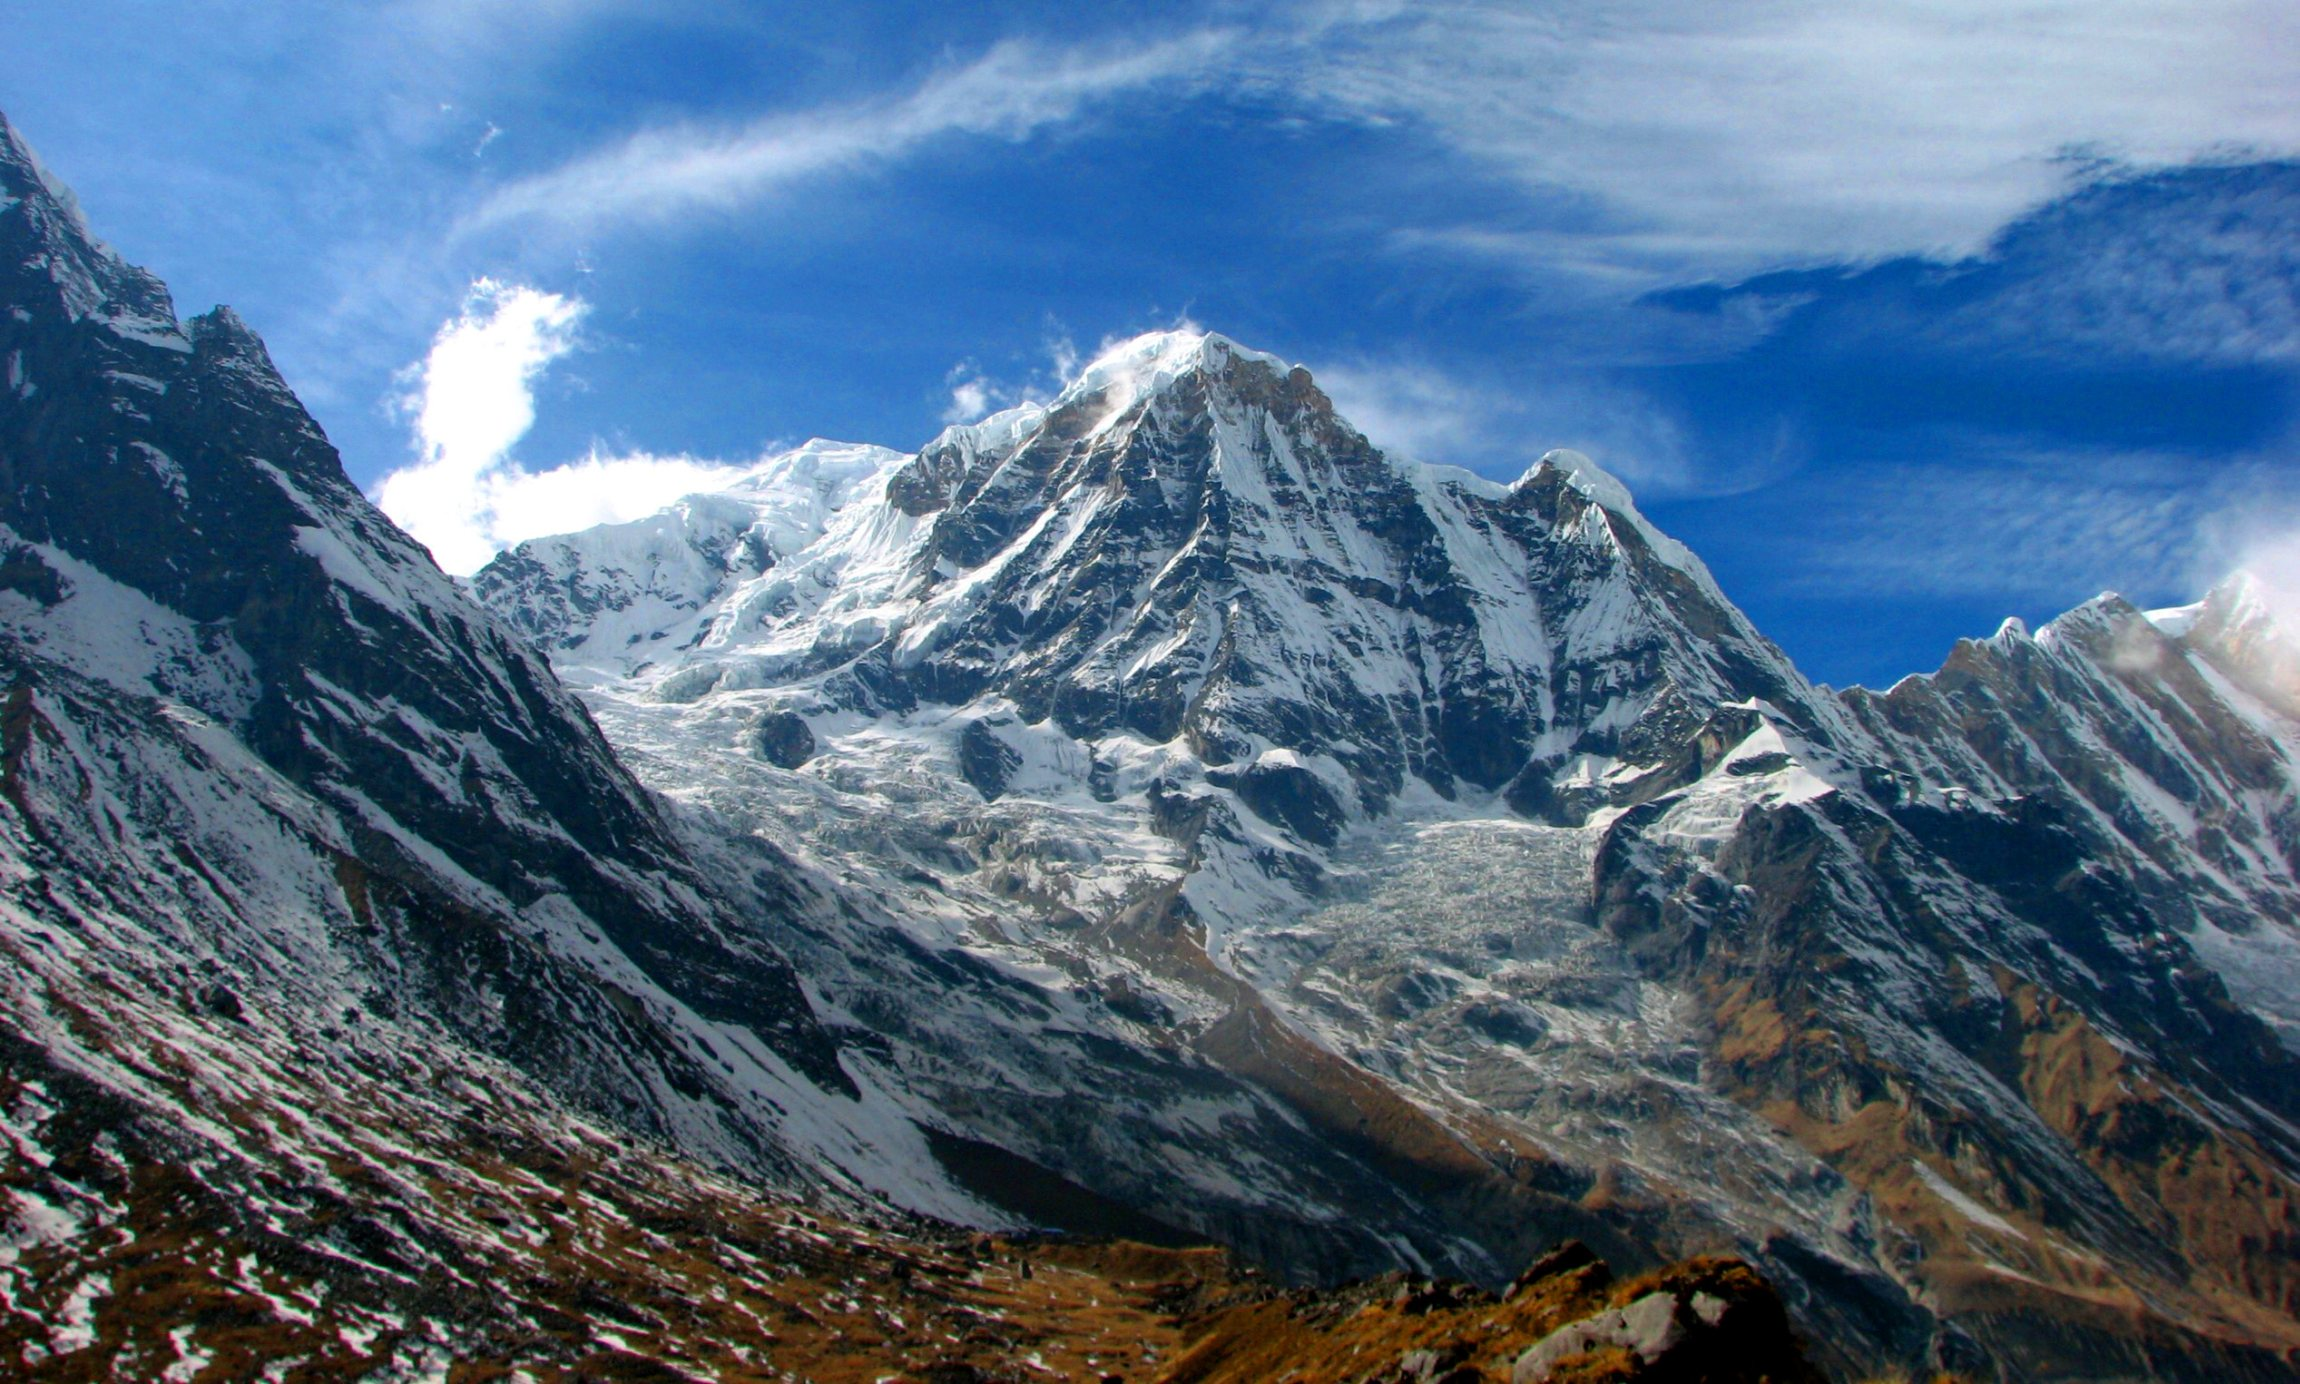 himalaya mountains hd wallpaper - photo #13